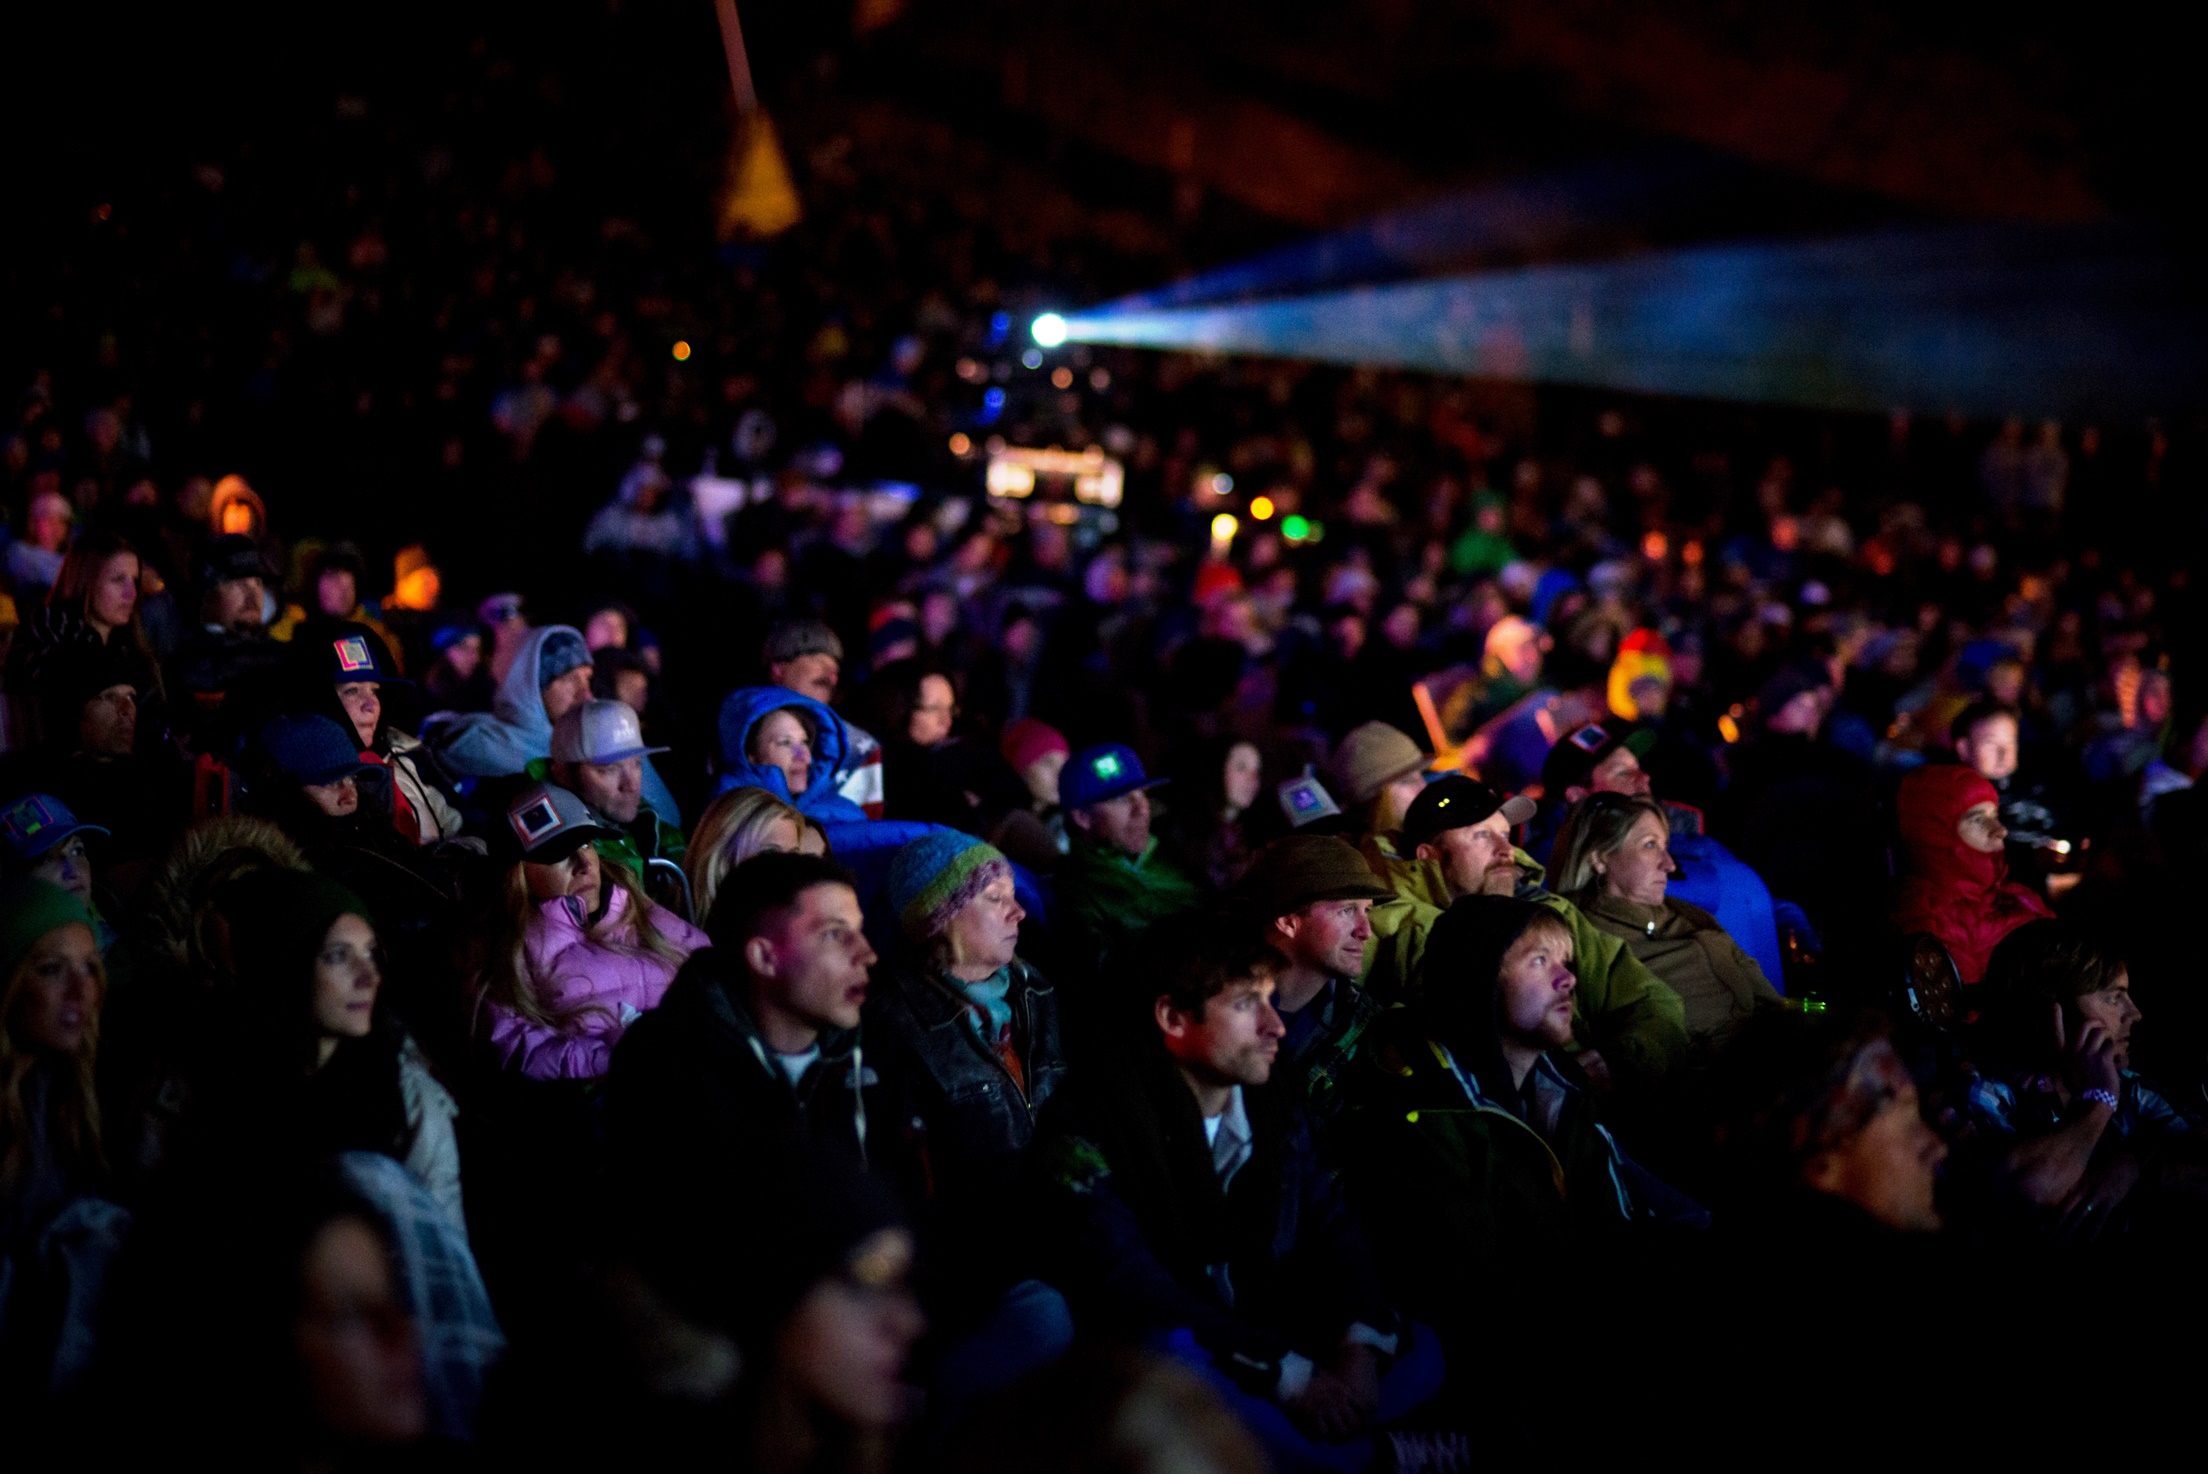 The crowd gathers for the North American premiere of McConkey in Squaw Valley, CA on the 5th of October, 2013.